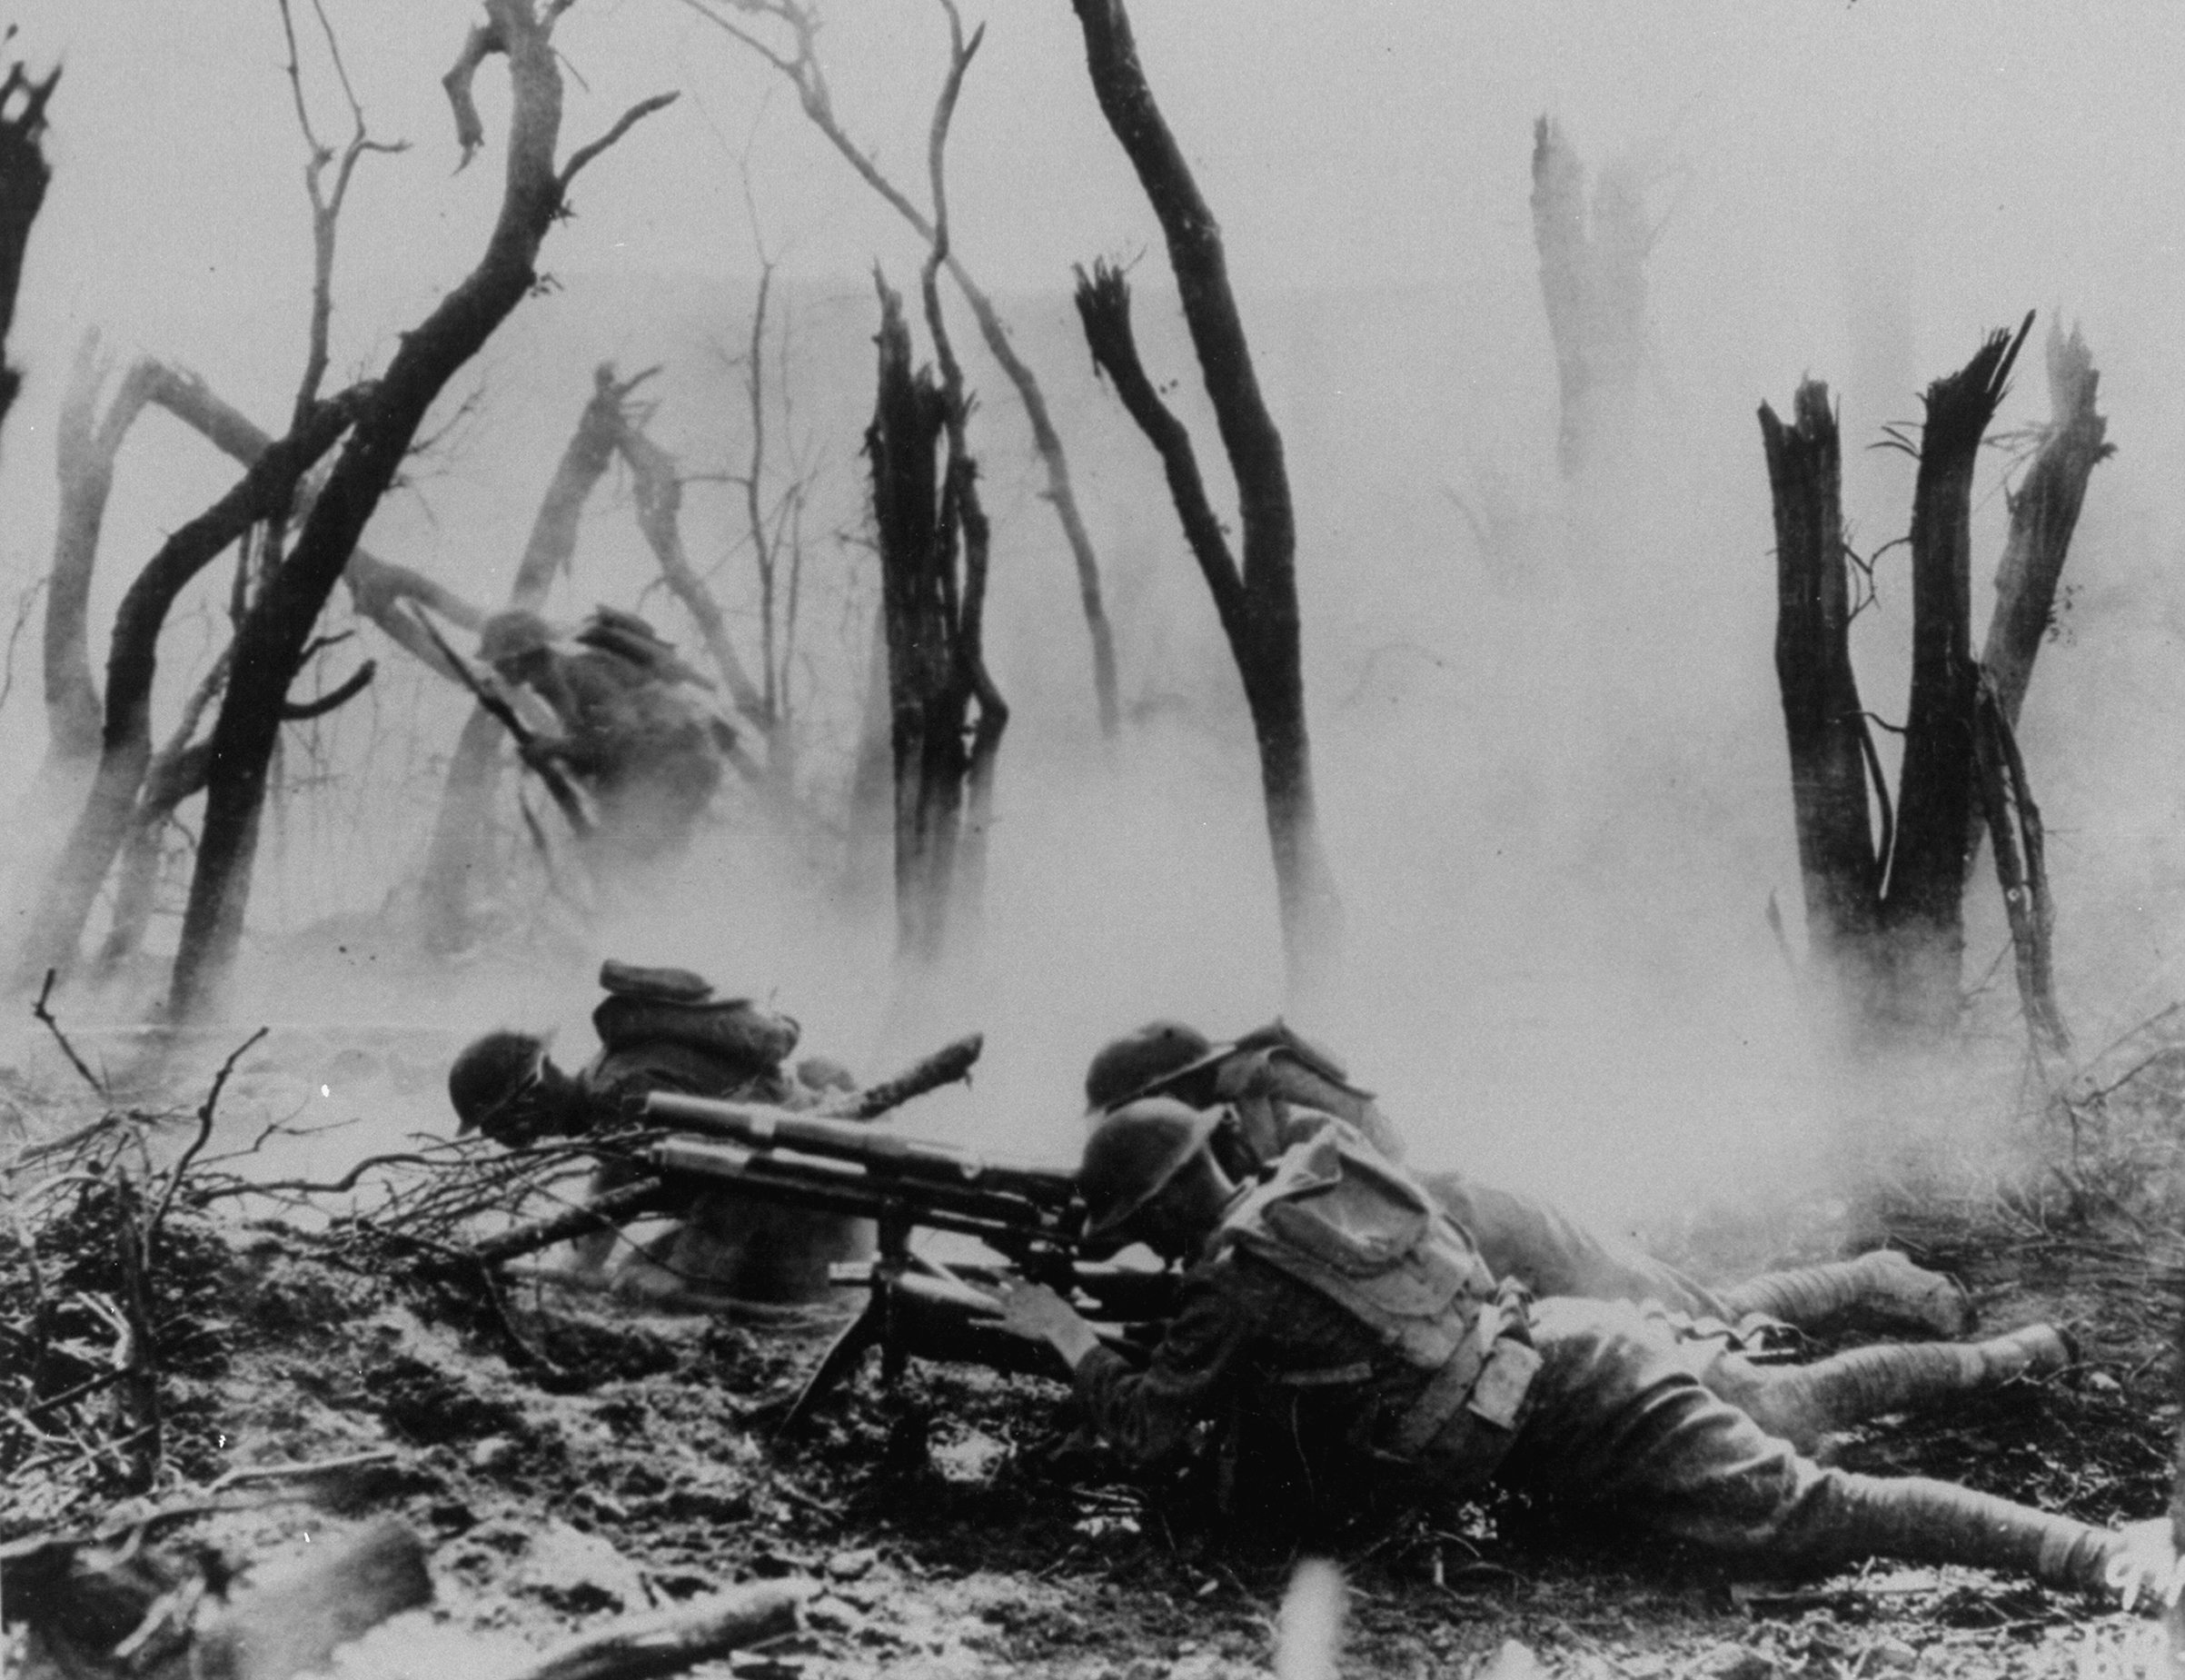 U.S. soldiers of the 23rd Infantry, 2nd Division, firing a 37mm machine gun at a German position in the Argonne Forest, during the Meuse-Argonne offensive in 1918.